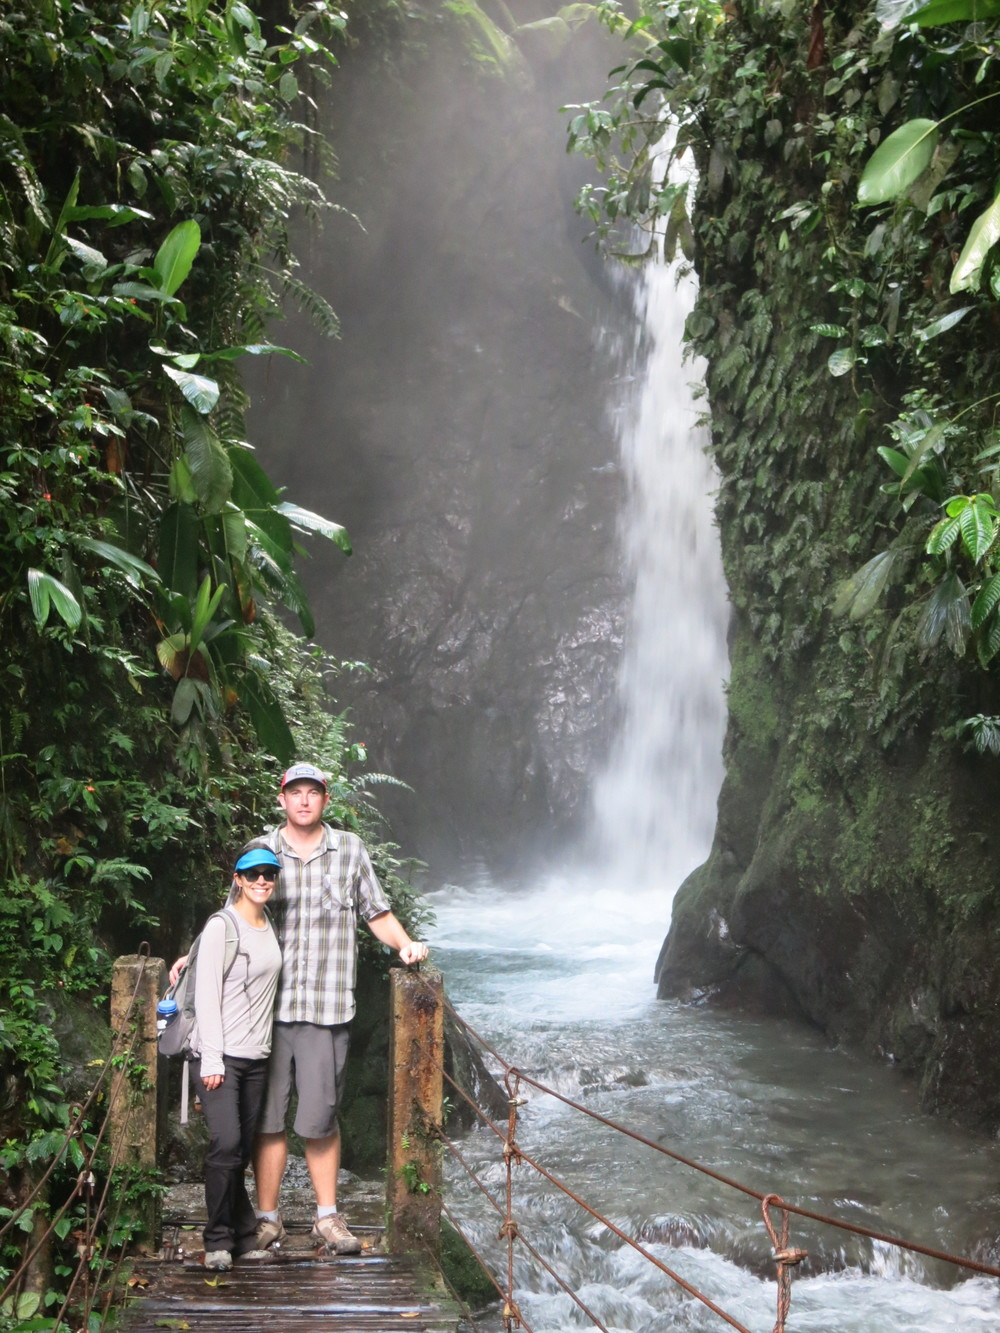 In front of one of the many waterfalls